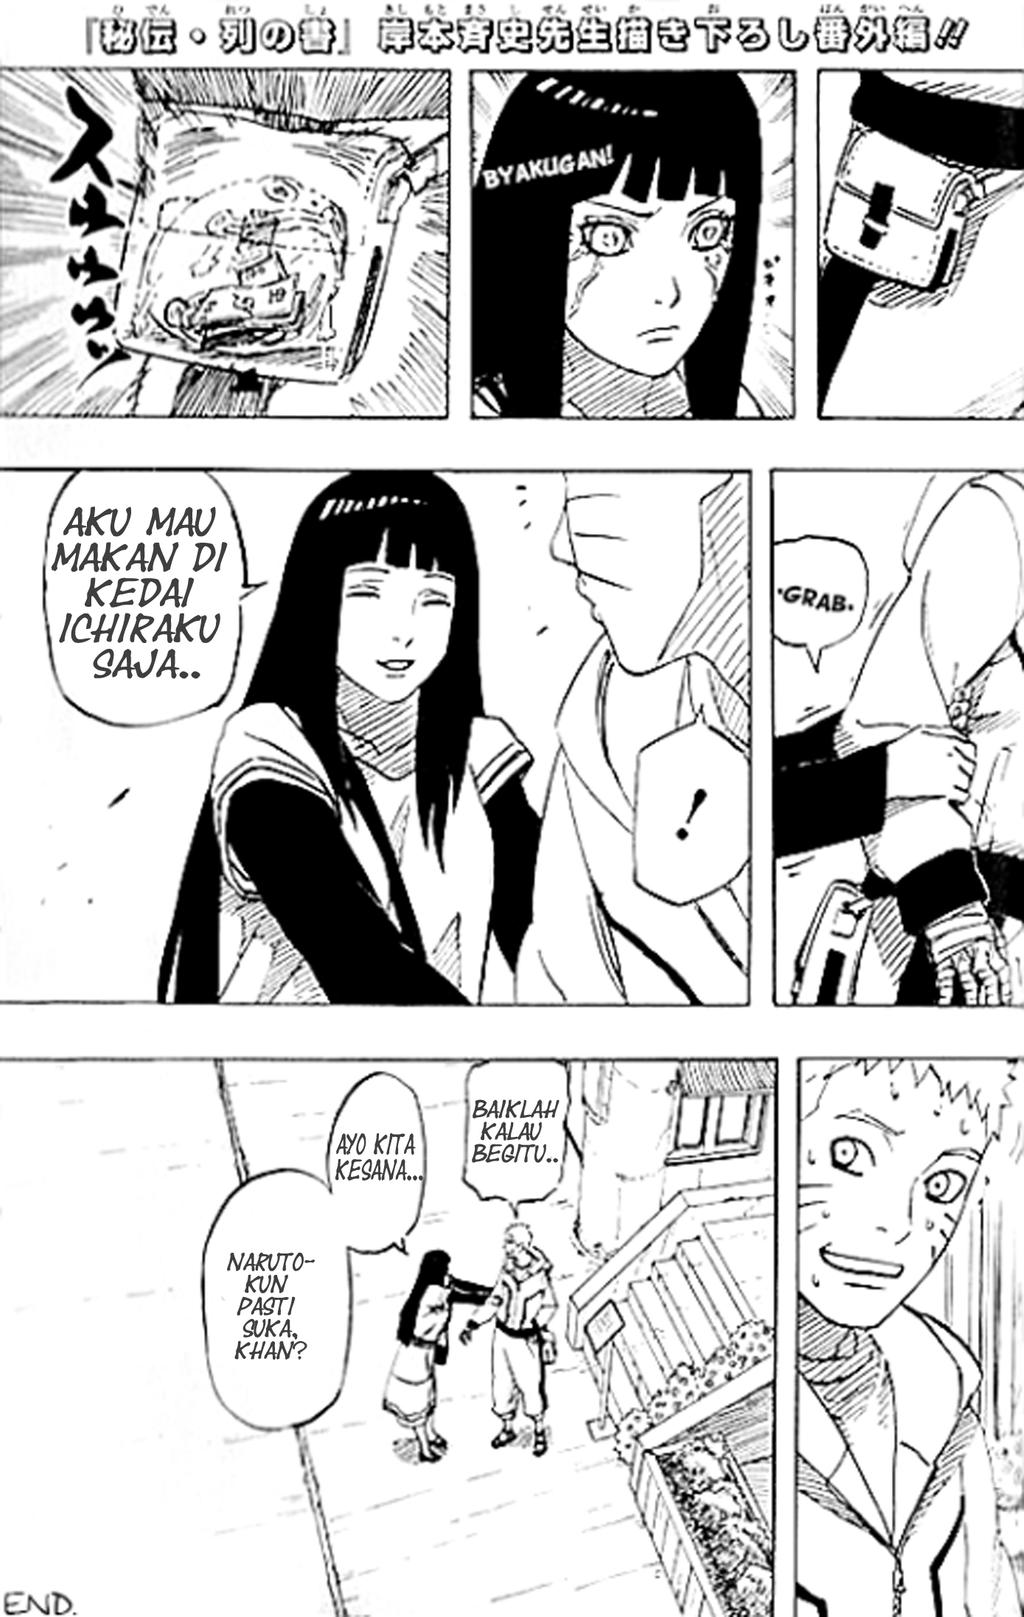 naruto dating hinata part 2015-5-6  hinata hyuga is a member of the hidden leaf  by the end of part i in the naruto series, hinata was able to foster better relations with both  dating characters.